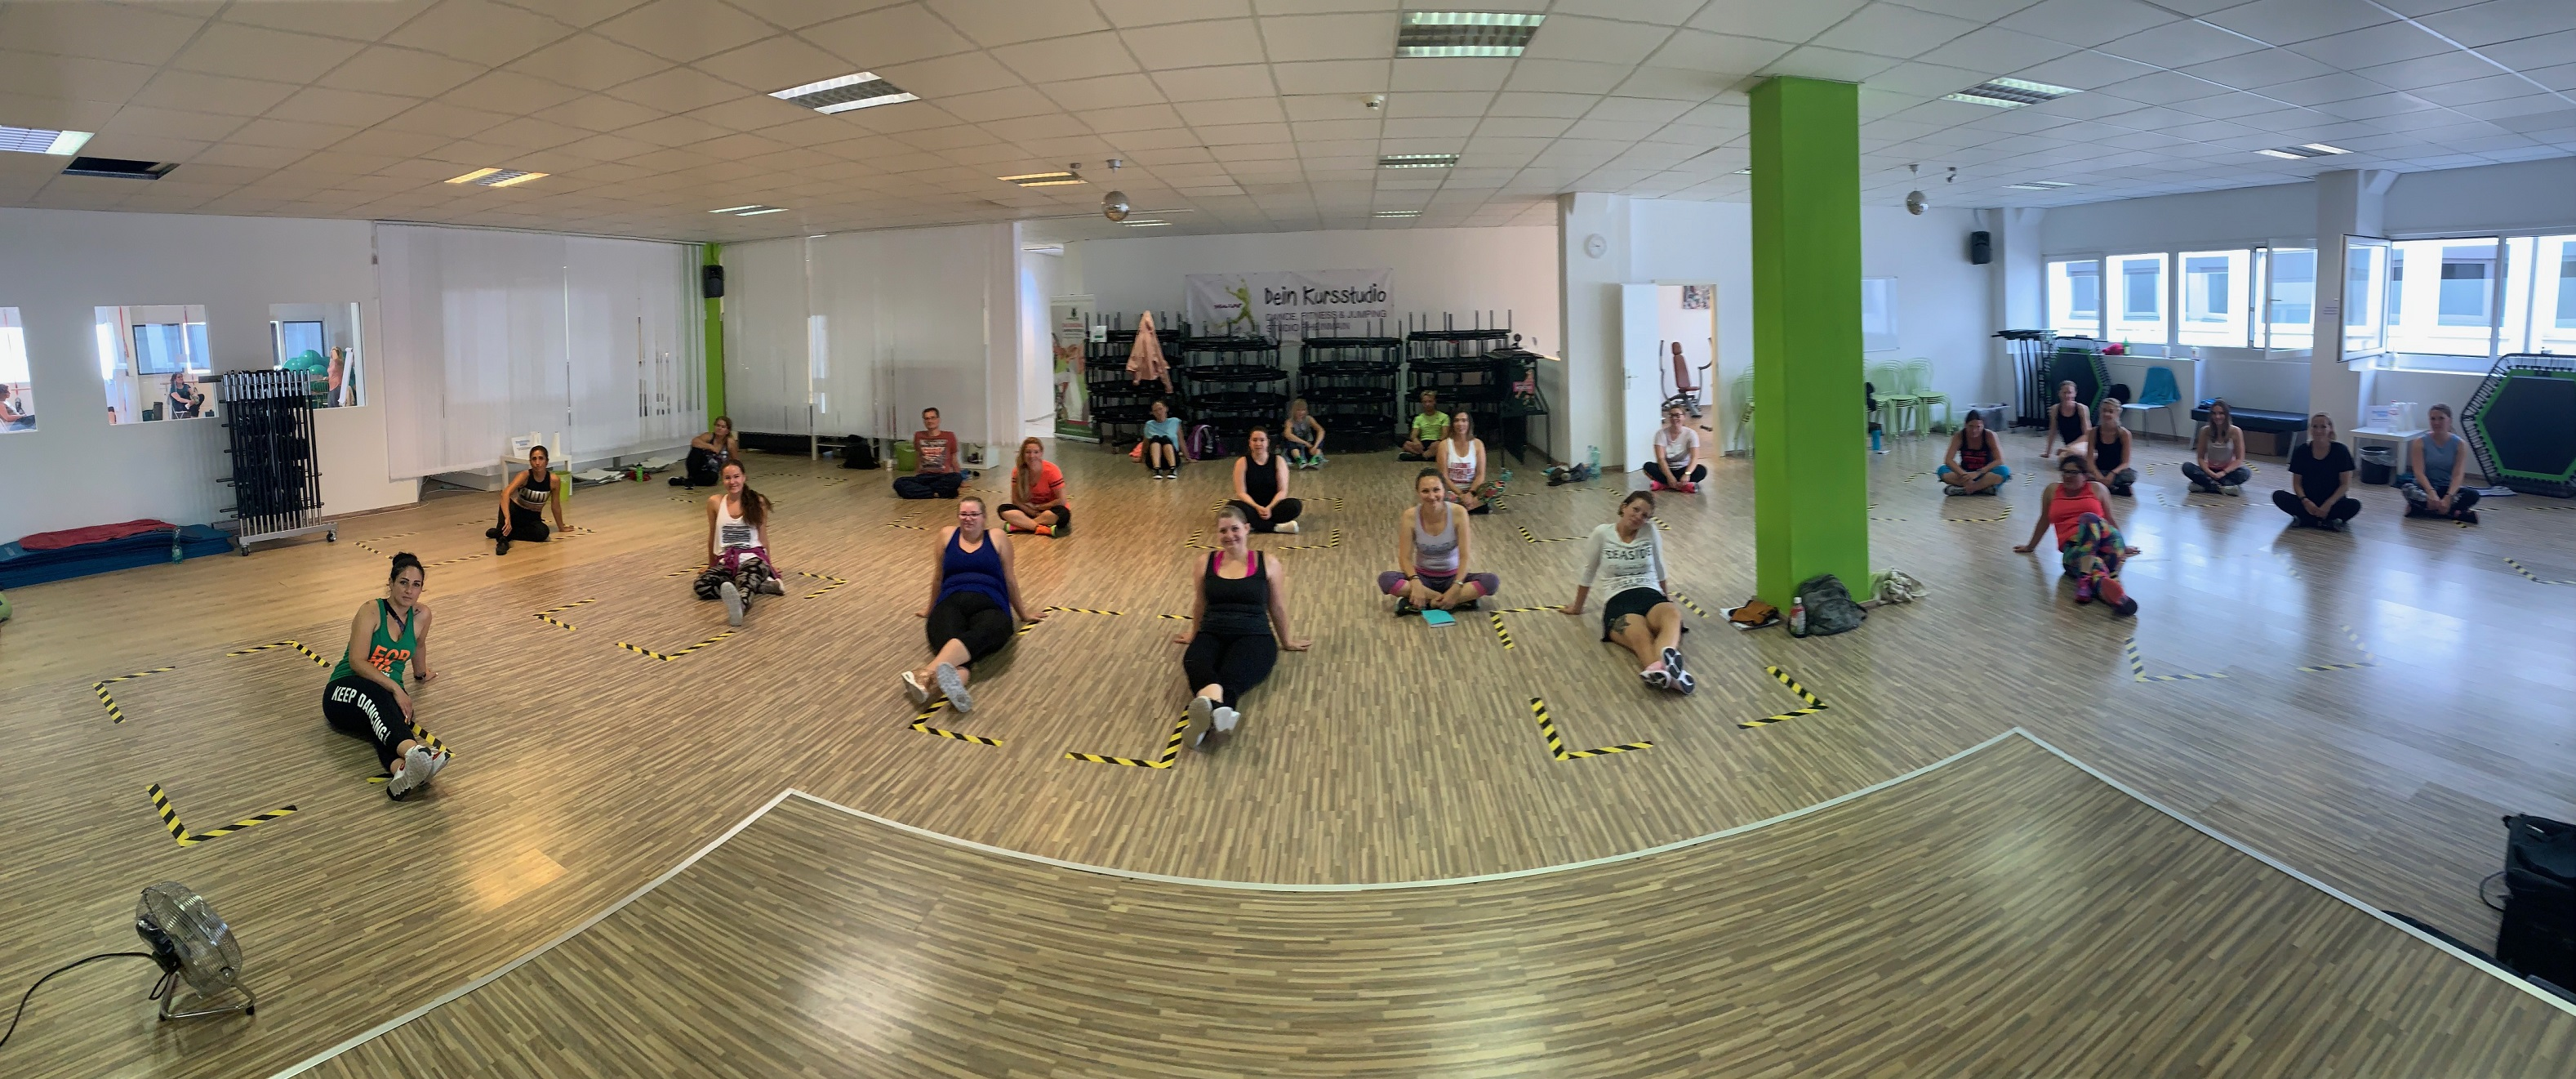 Zumba® Instructor Gruppenfoto in Heusenstamm am 22.08.2020